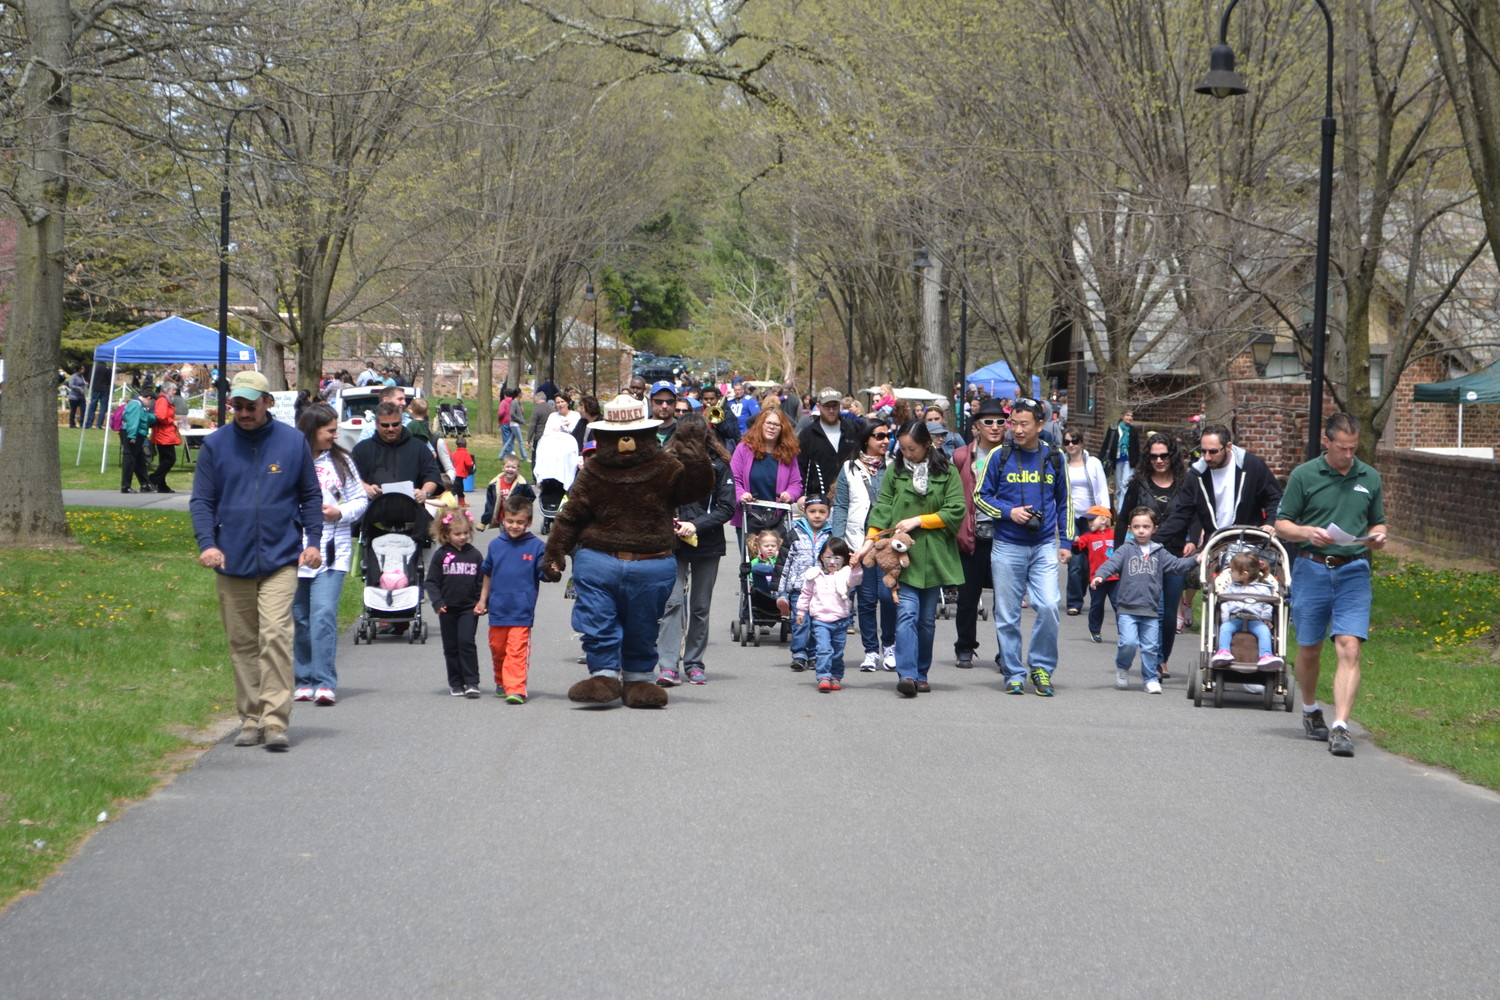 Smokey Bear leads the way at Planting Fields Aboretum's Arbor Day Festival.